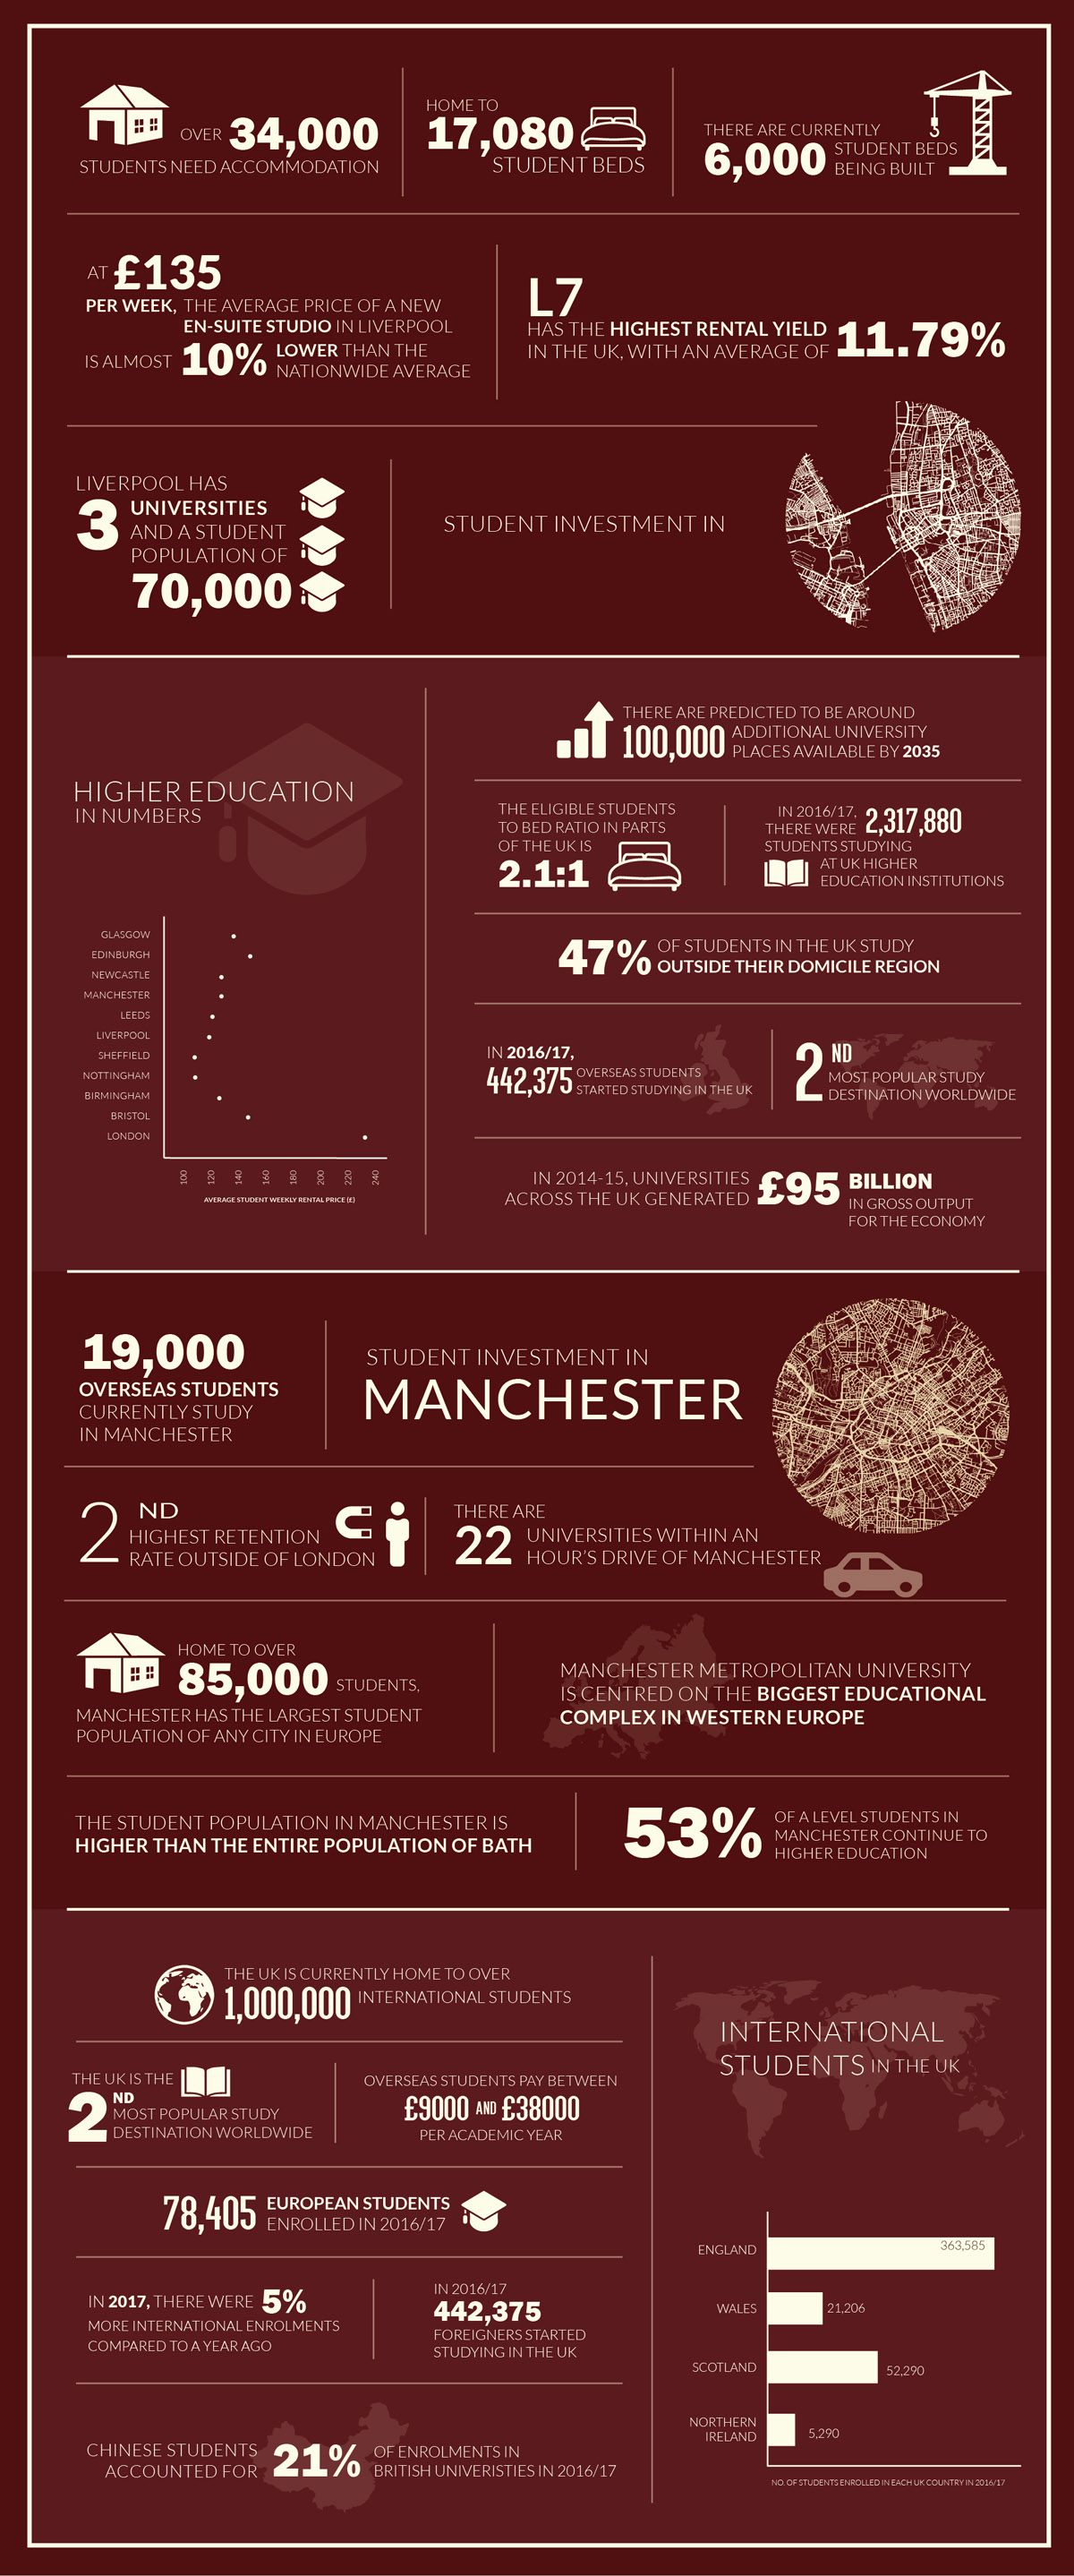 Infographic about the student population and student property market in the UK